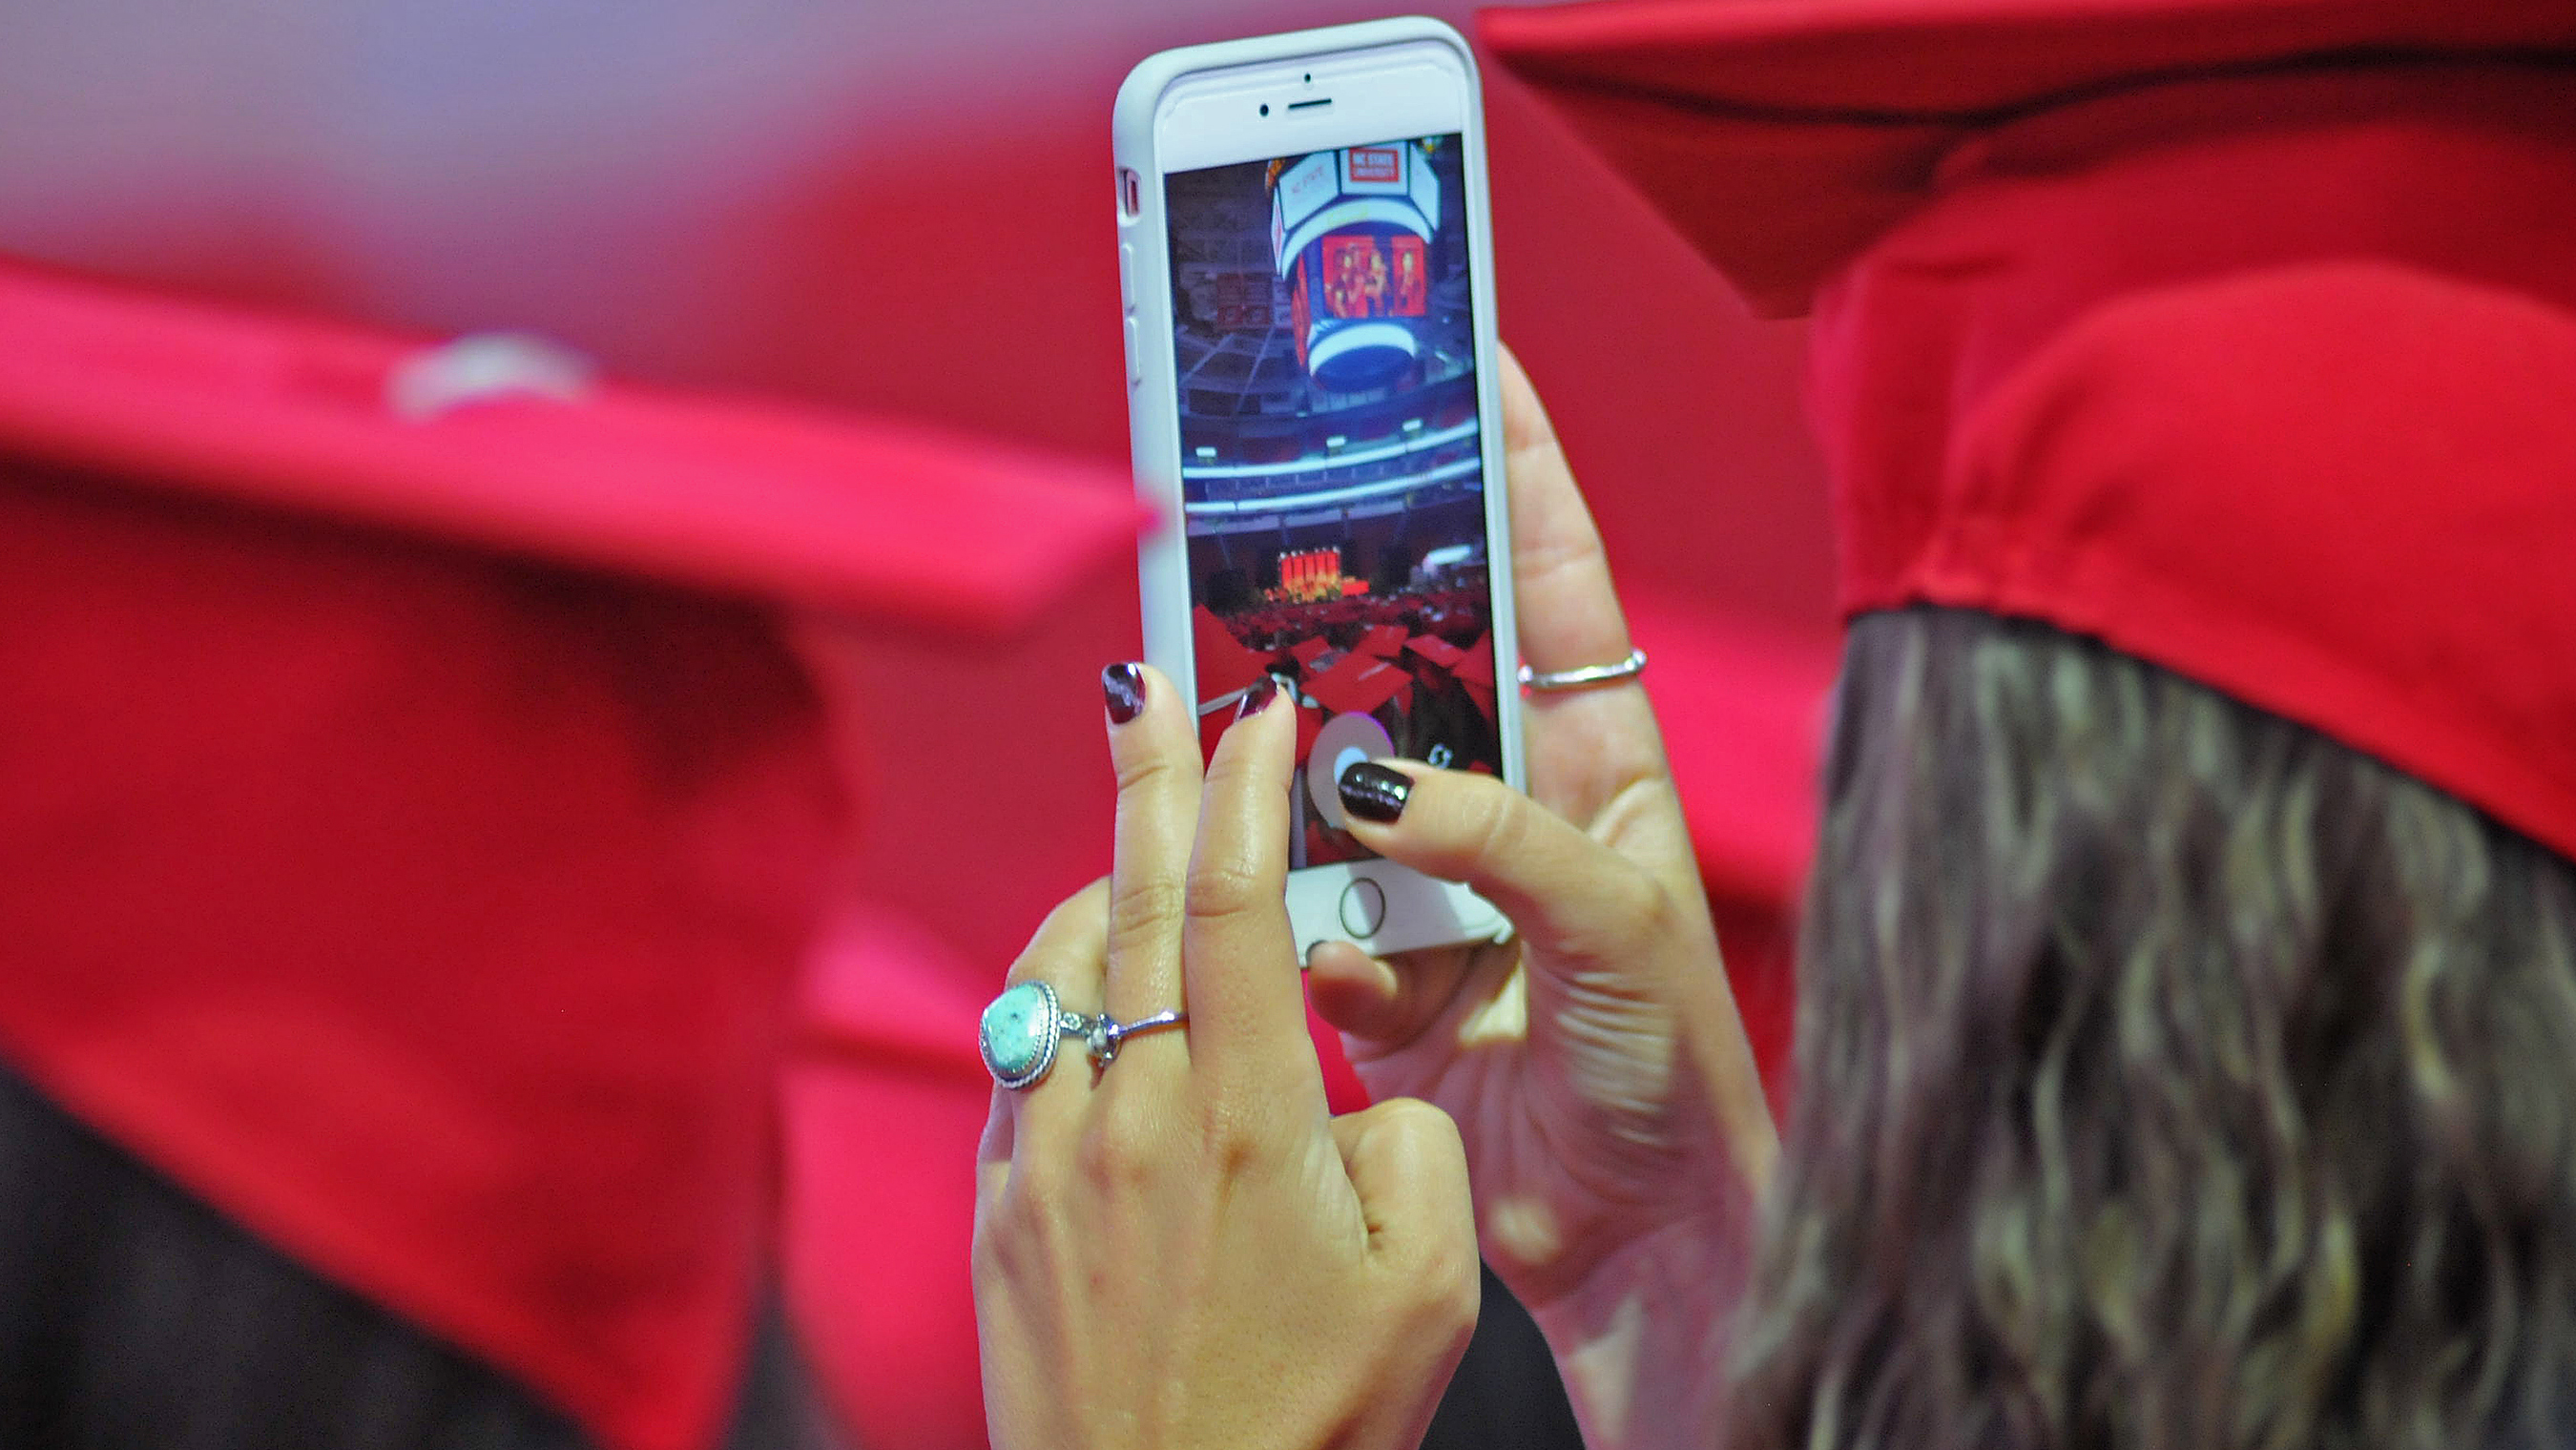 A graduating student takes a cell phone picture during commencement.